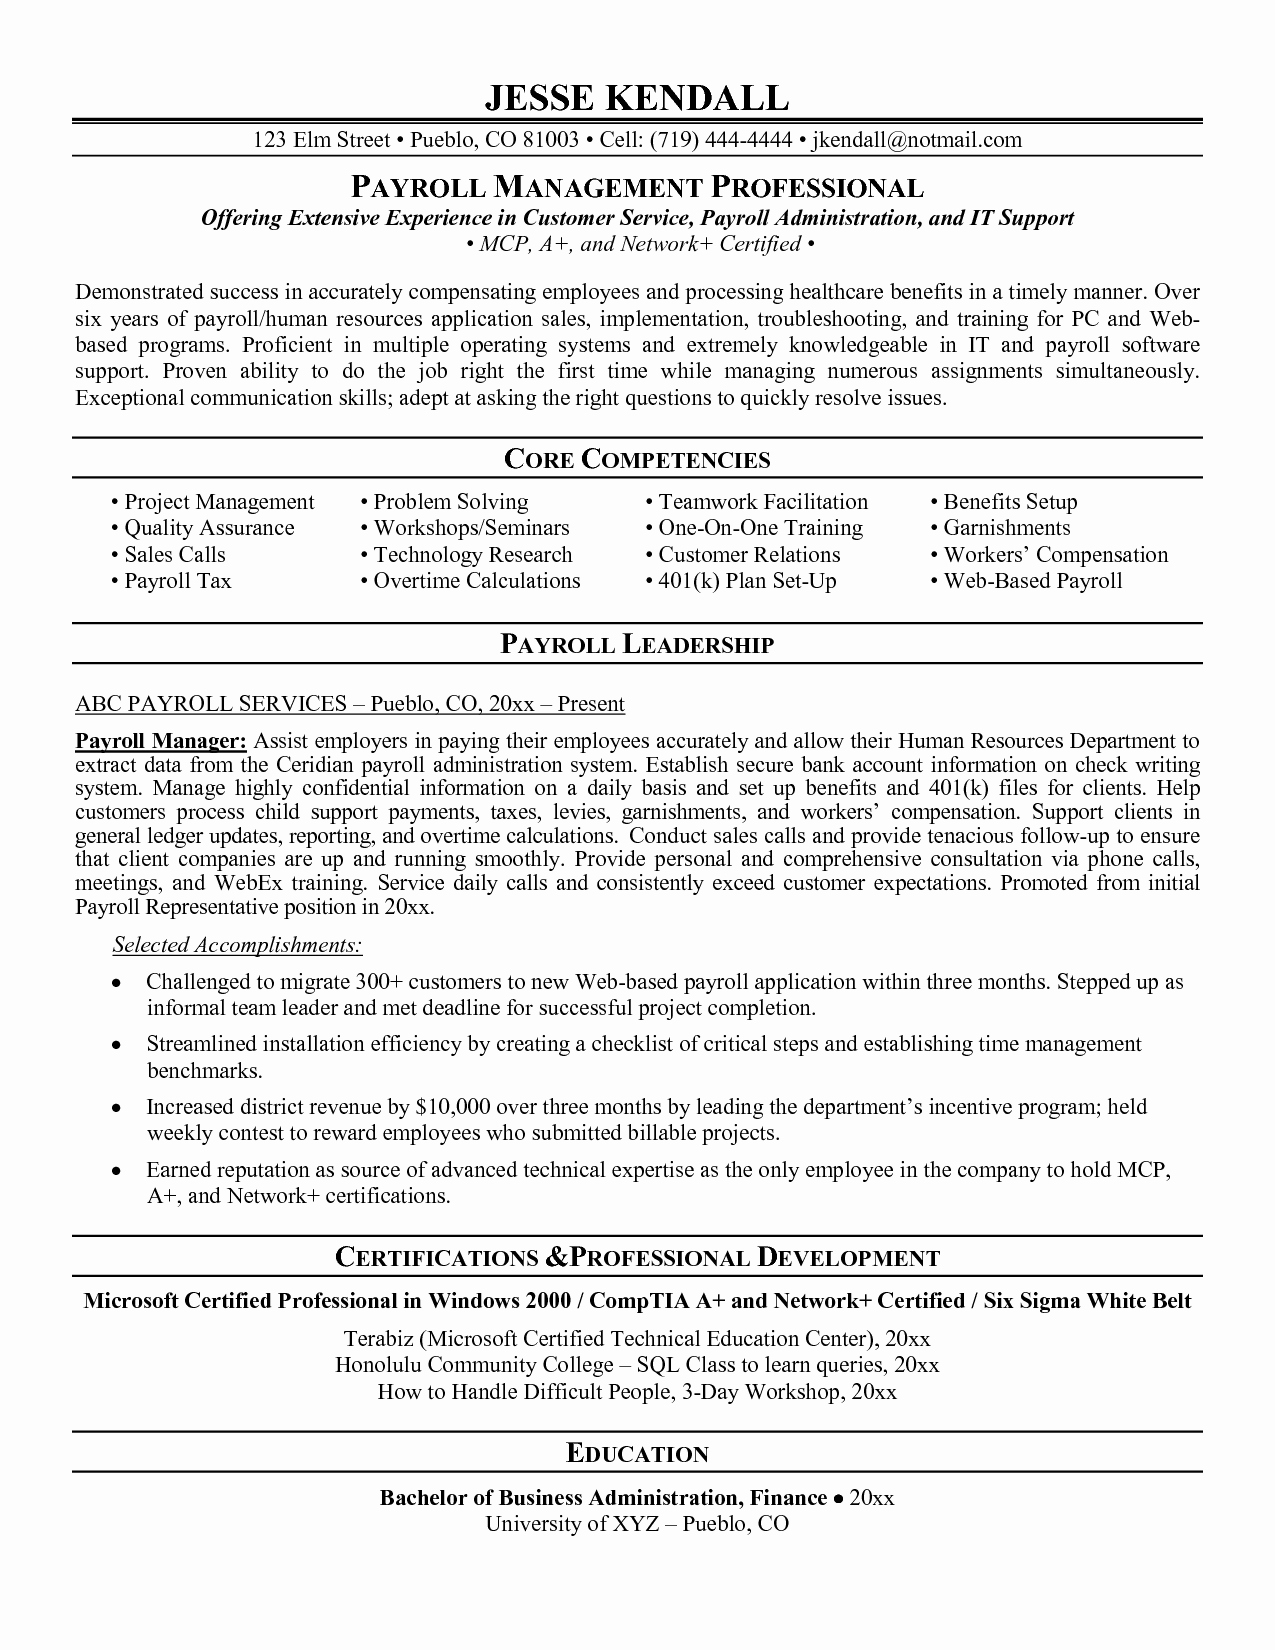 Payroll Manager Resume